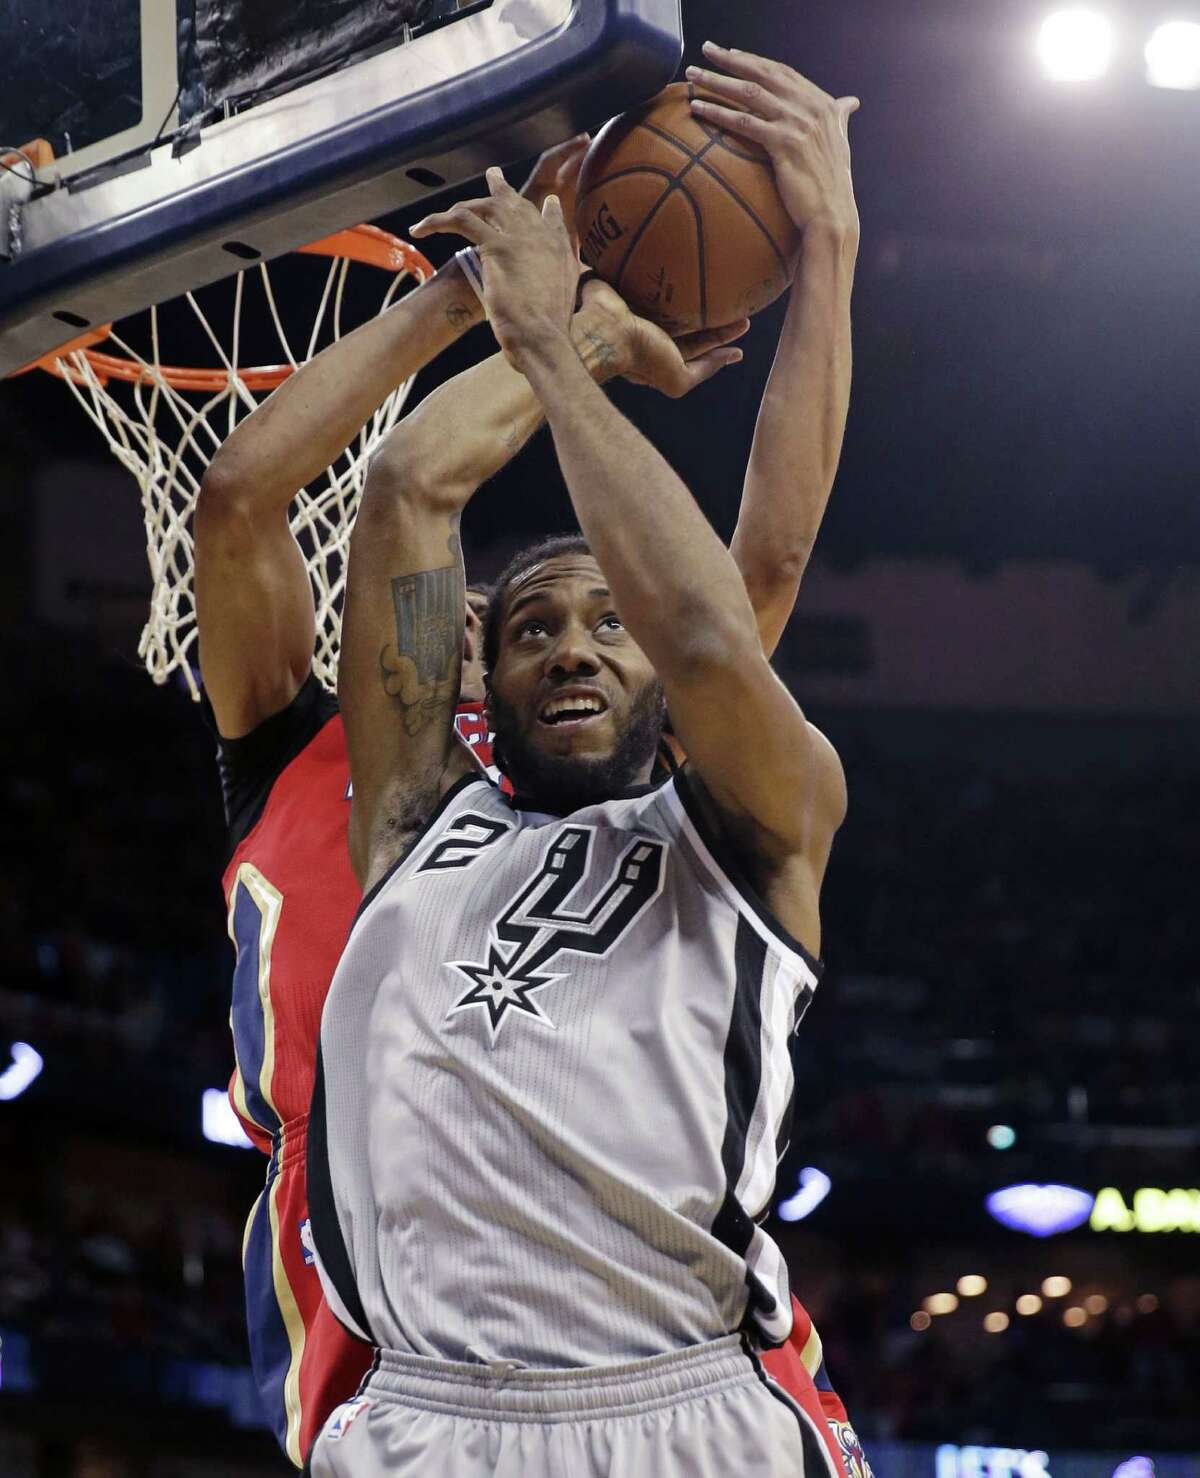 San Antonio Spurs forward Kawhi Leonard (2) battles for a rebound with New Orleans Pelicans forward Anthony Davis in the first half of an NBA basketball game in New Orleans, Wednesday, April 15, 2015.